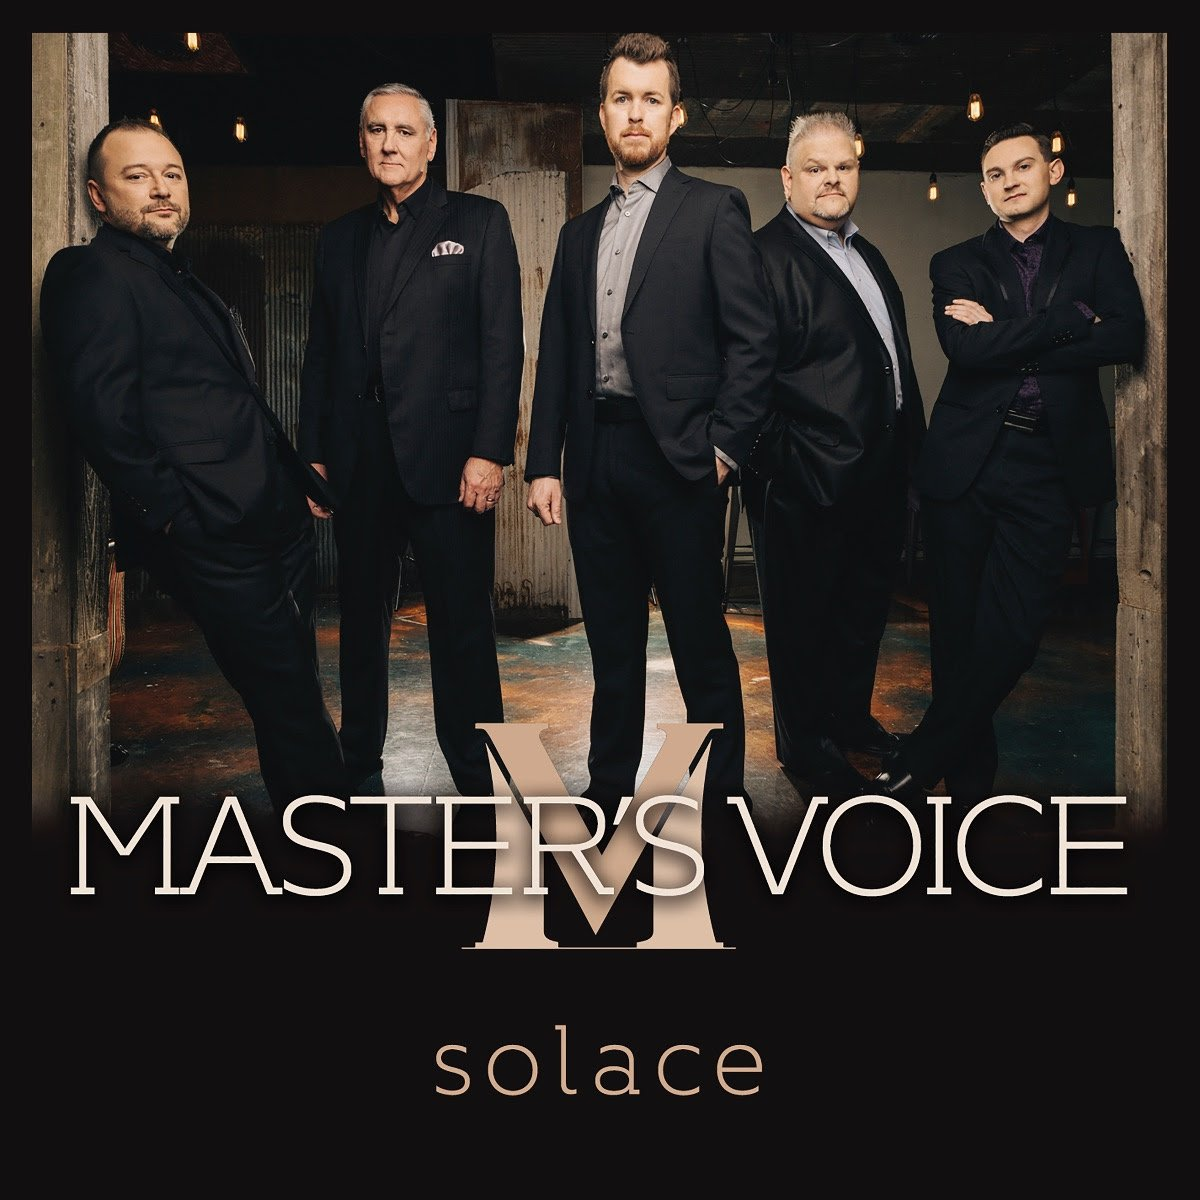 Master's Voice releases 'Solace,' finding peace in God's word